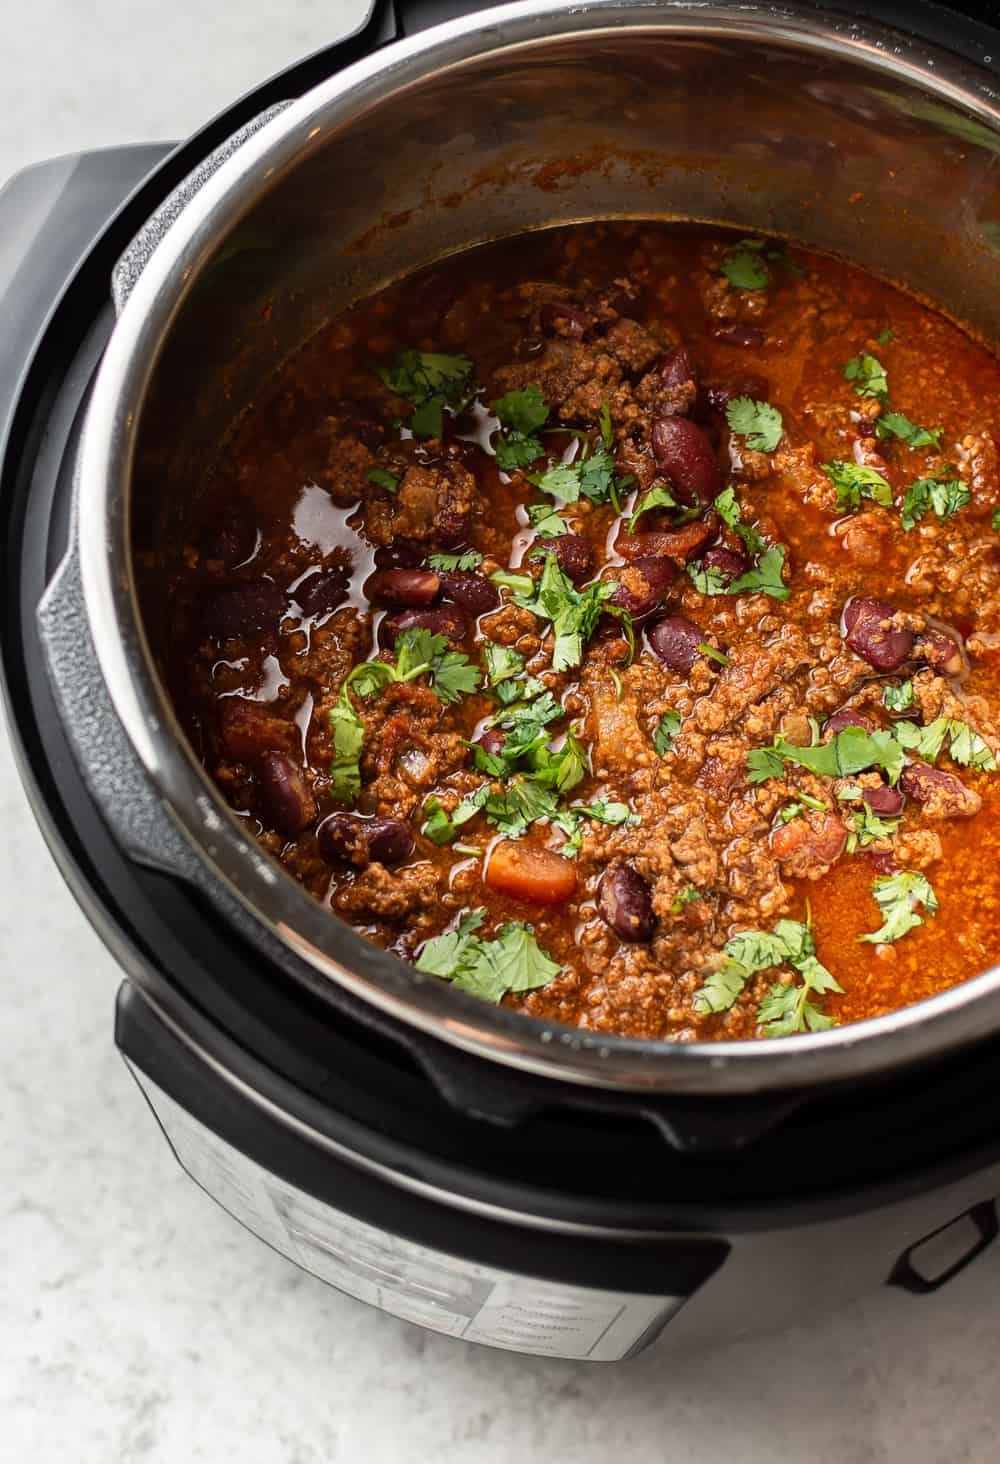 close-up of beef chili in an Instant Pot